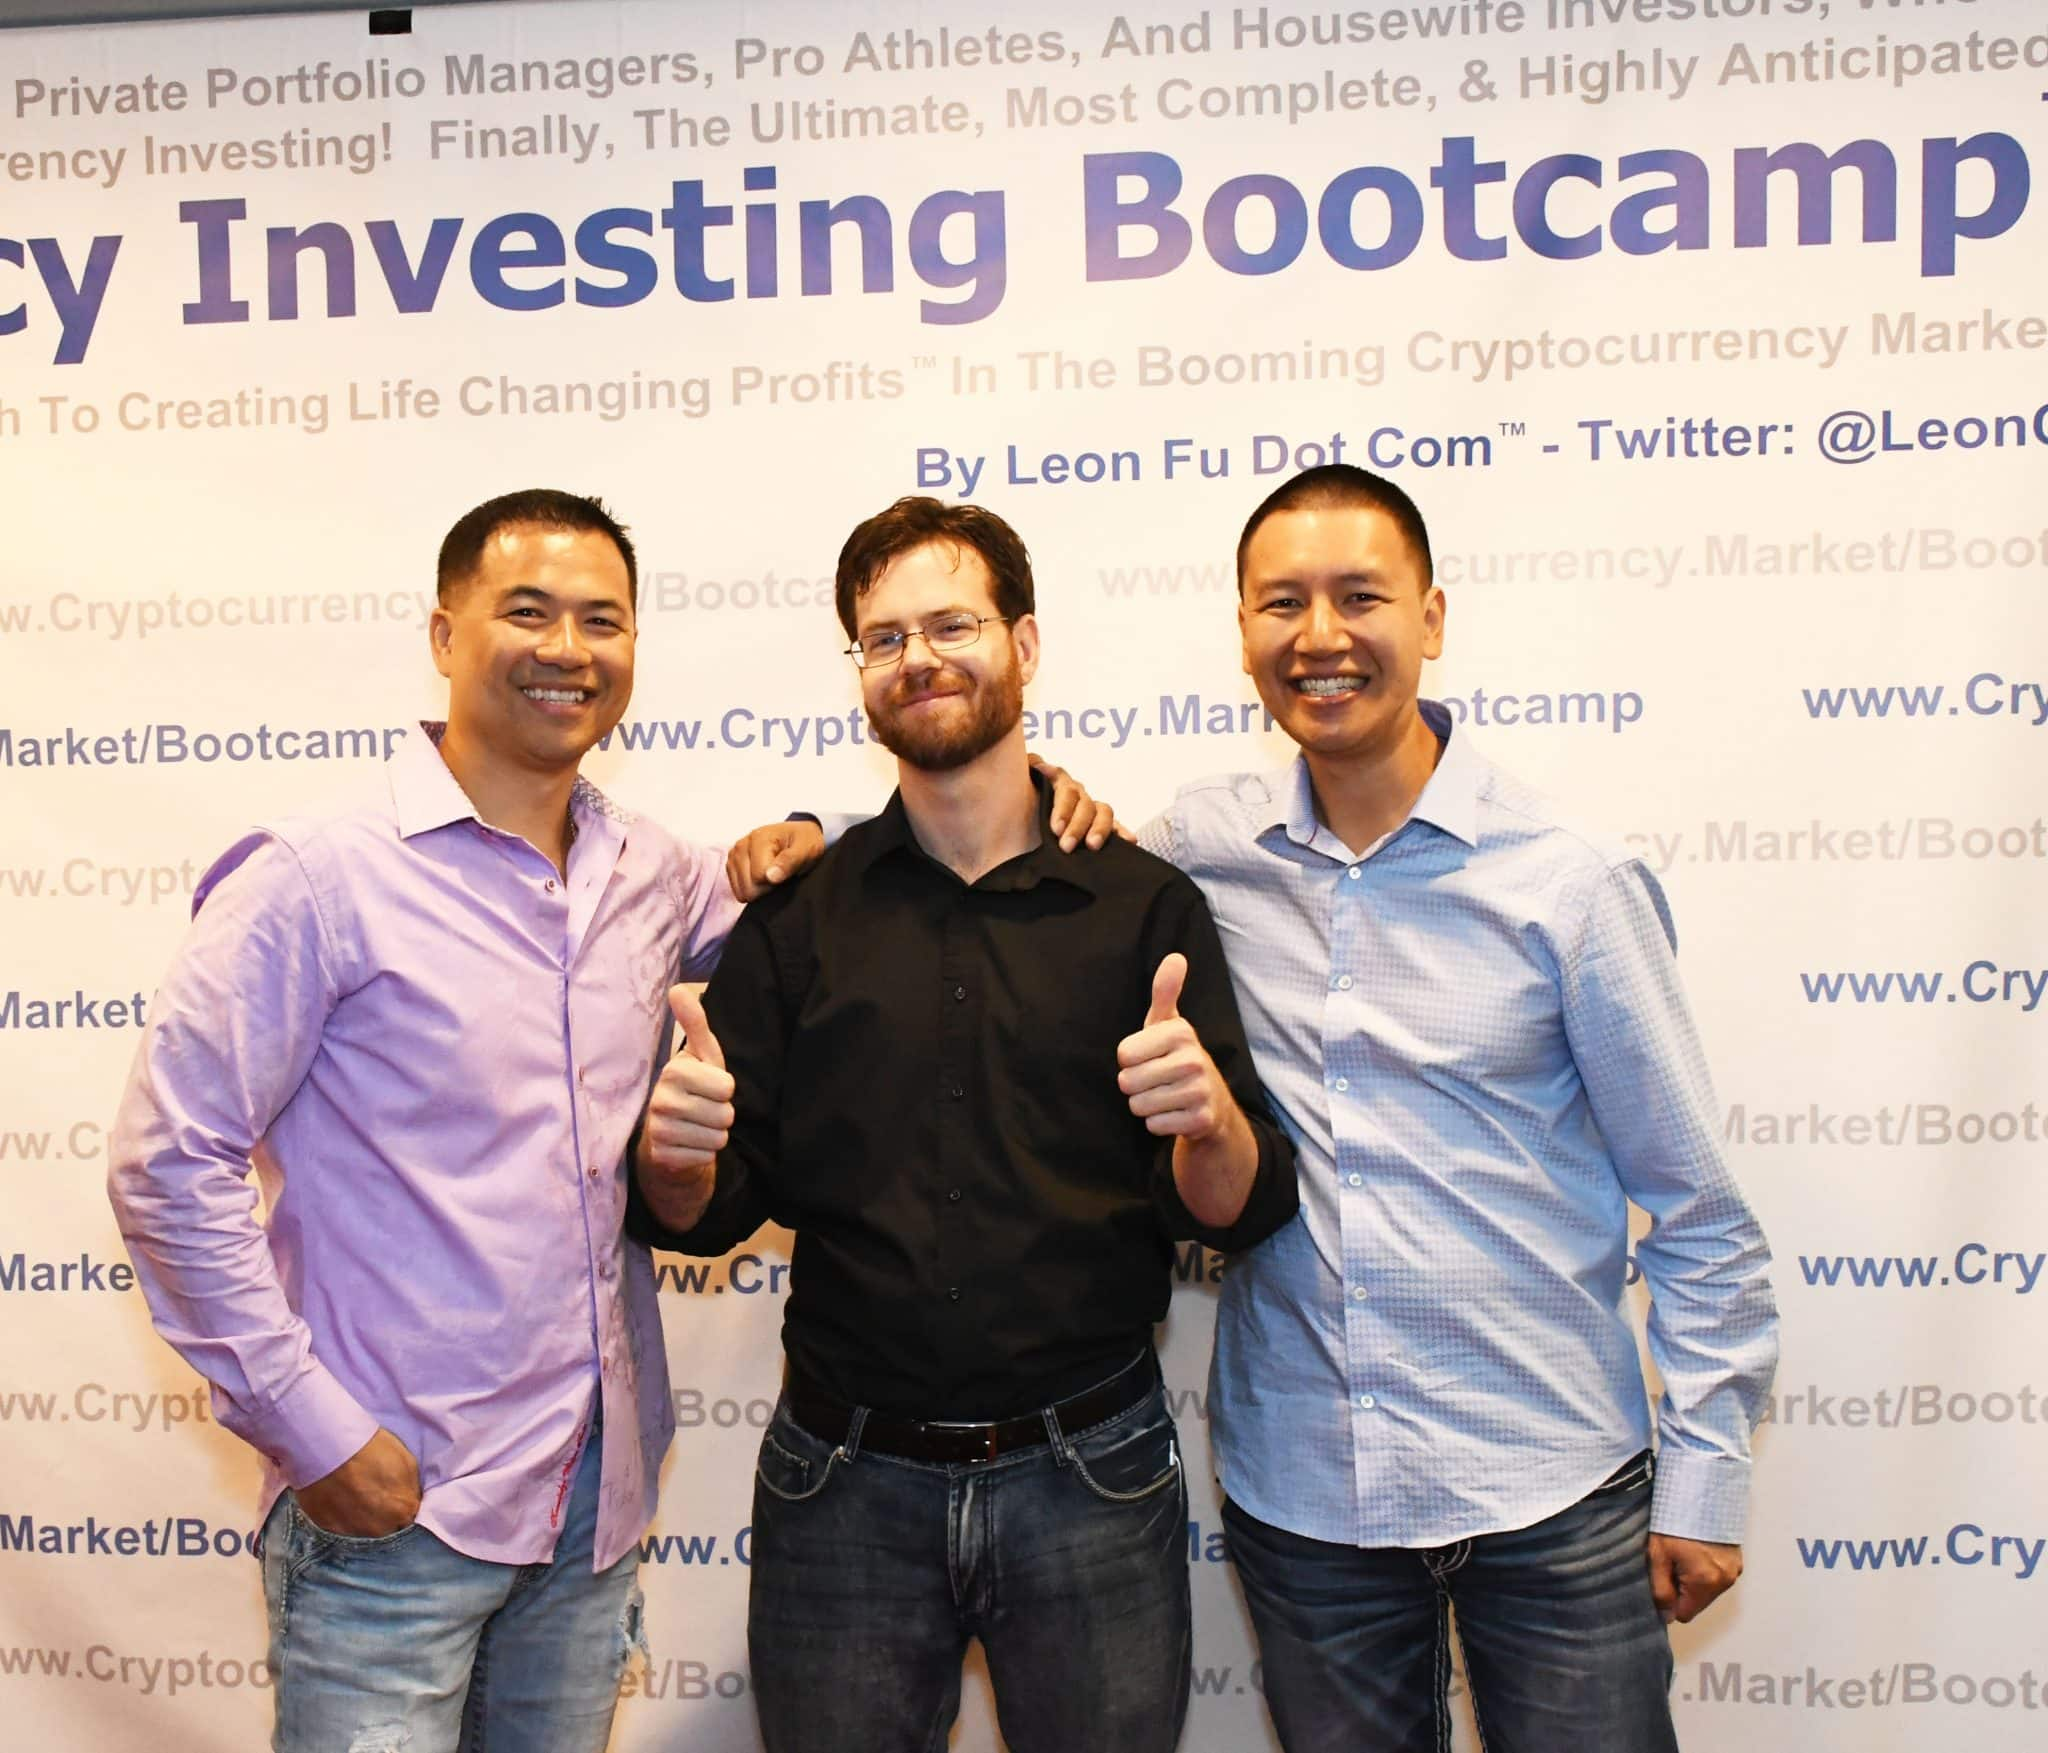 Cryptocurrency Investing Bootcamp - Tai Zen & Leon Fu Dot Com 6